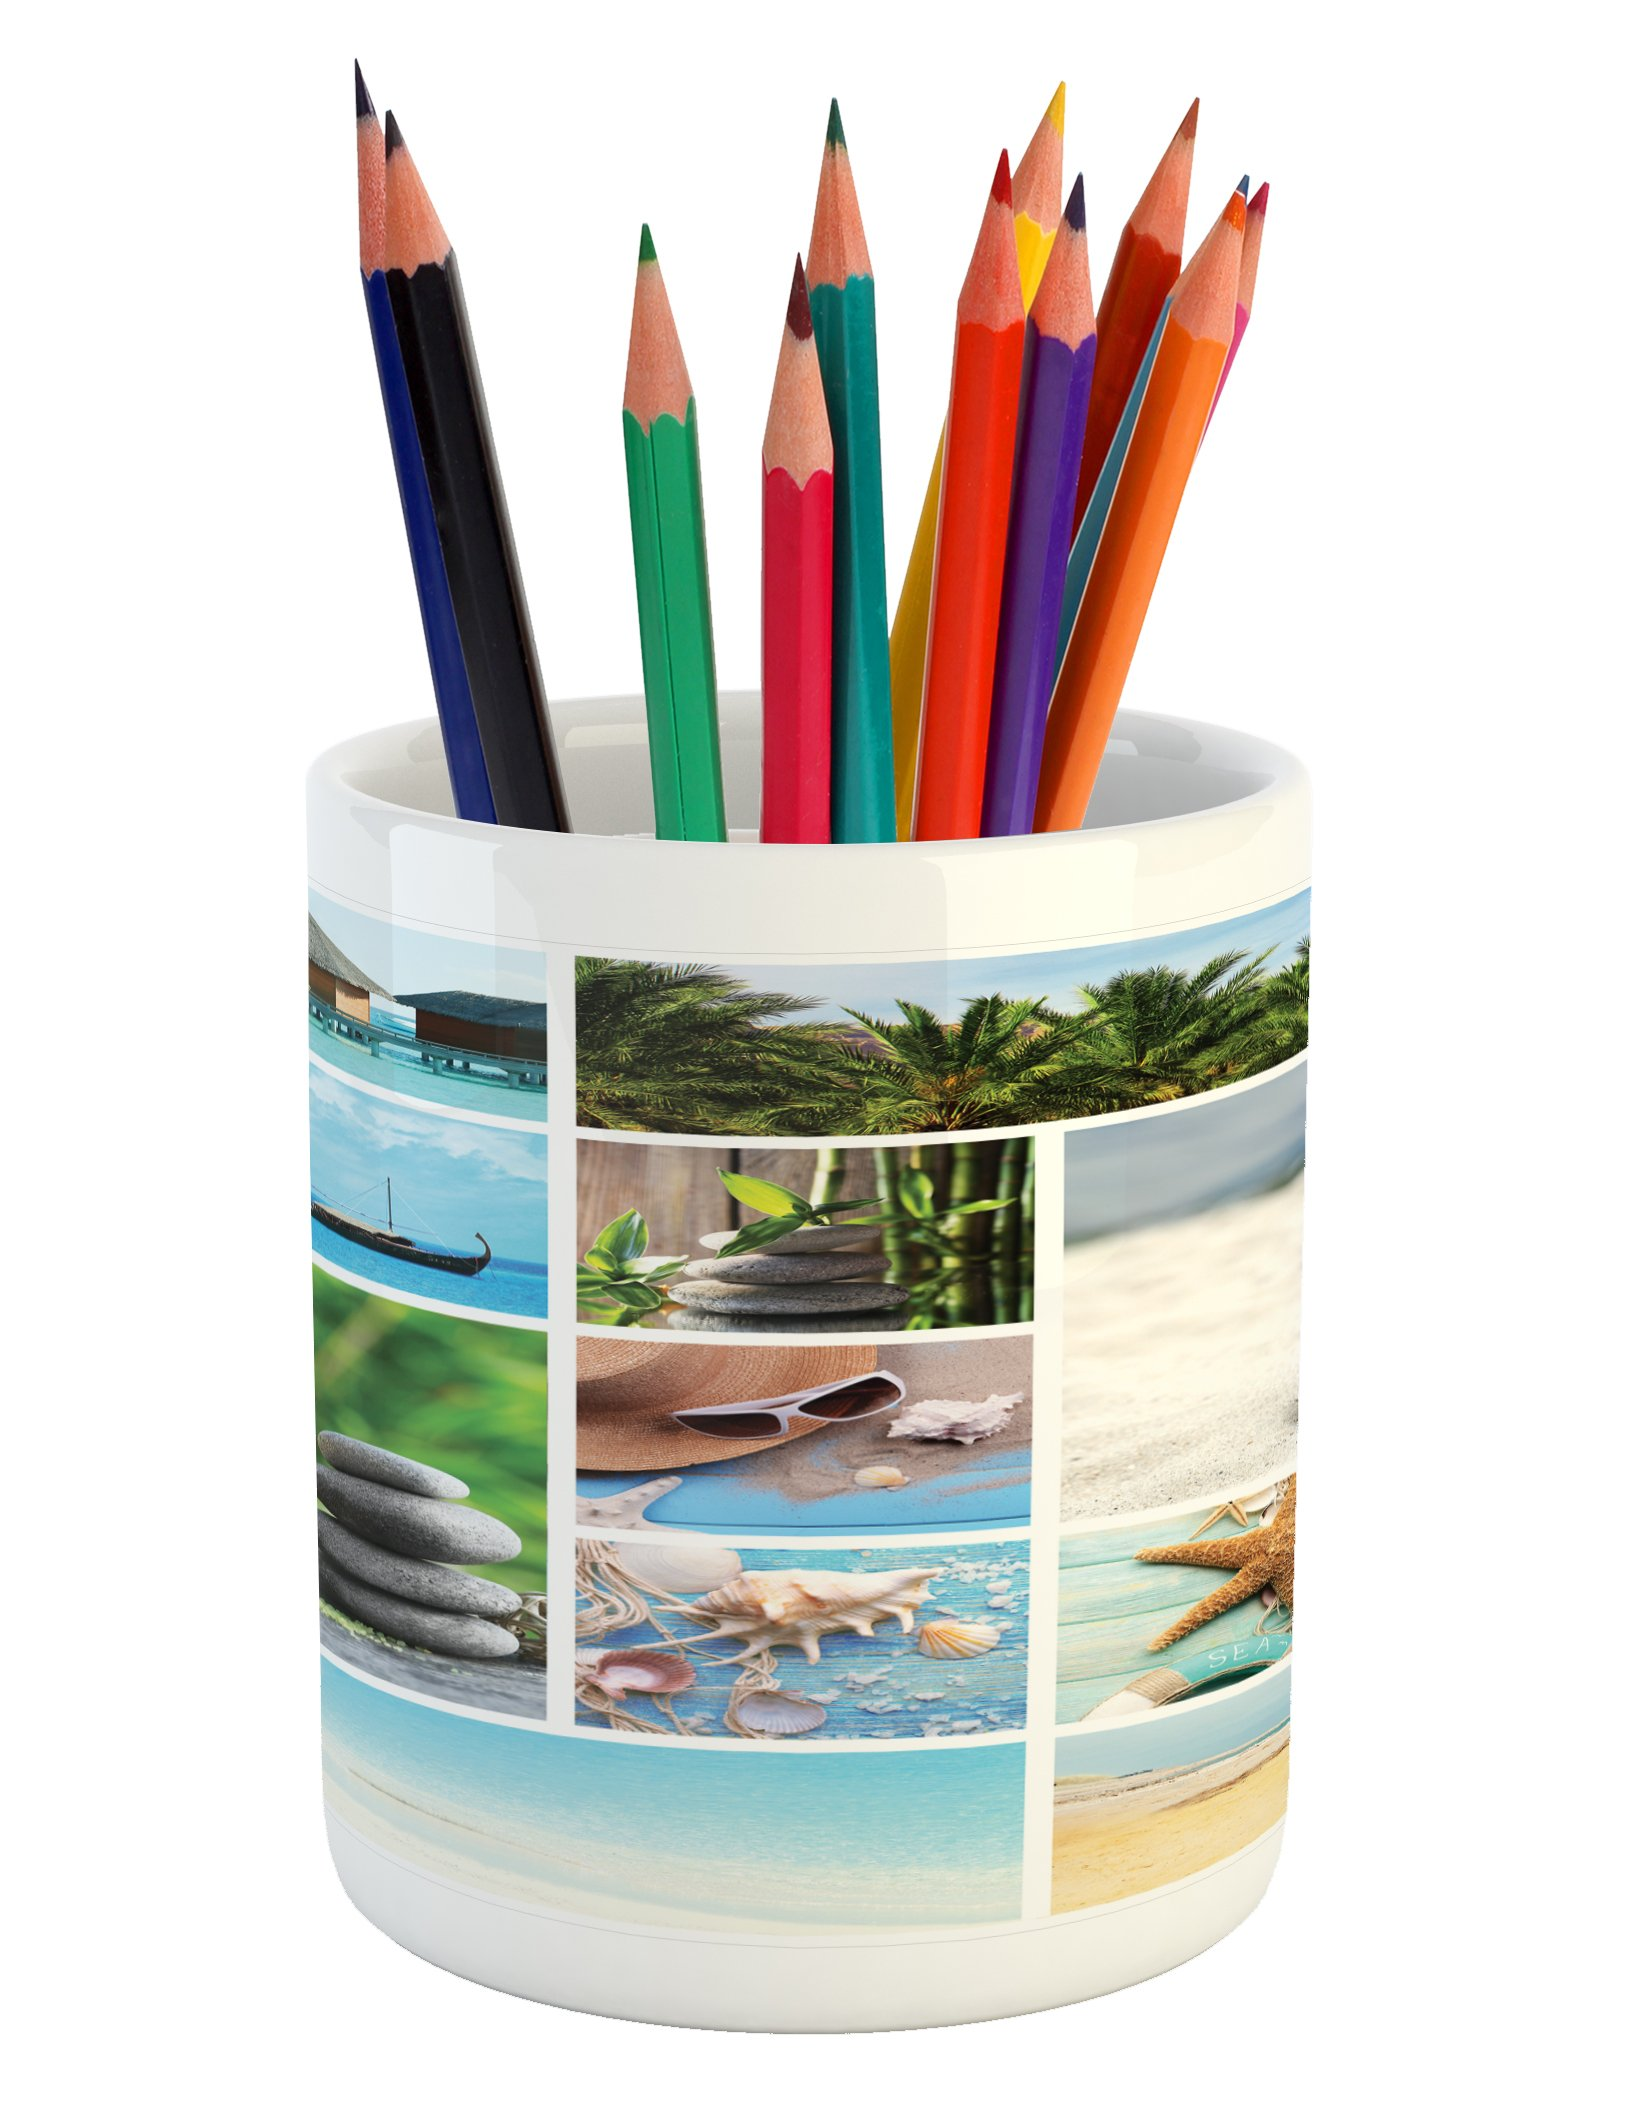 Ambesonne Spa Pencil Pen Holder, Collage of Spa Composition with Tropical Sandy Beach Ocean Rock Views Relax Rest Image, Printed Ceramic Pencil Pen Holder for Desk Office Accessory, Multicolor